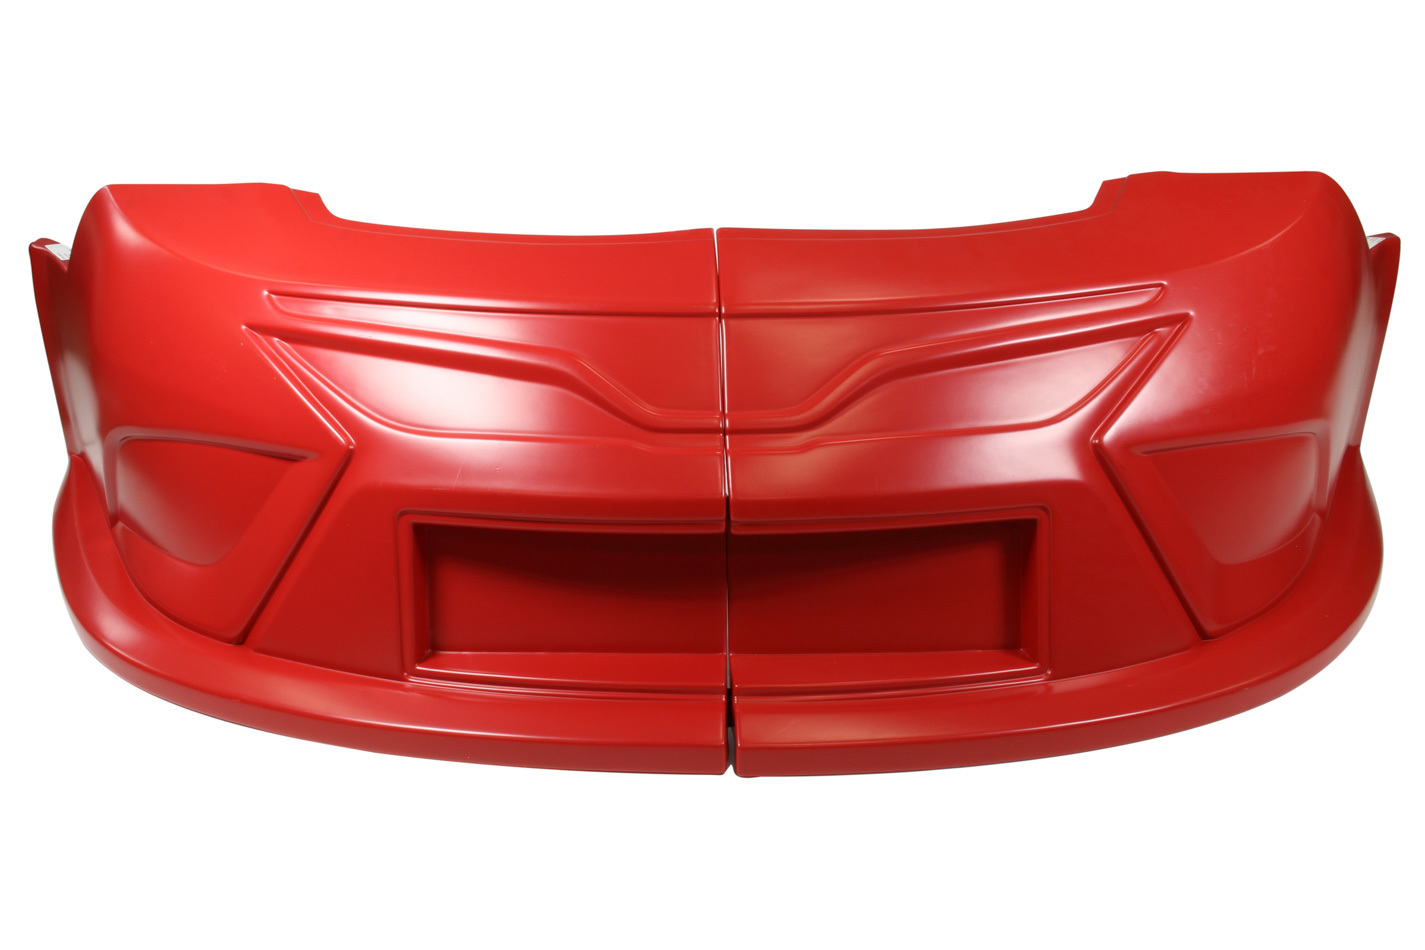 FIVESTAR 2019 LM Toyota Nose Plastic Red P/N -11712-41051-R